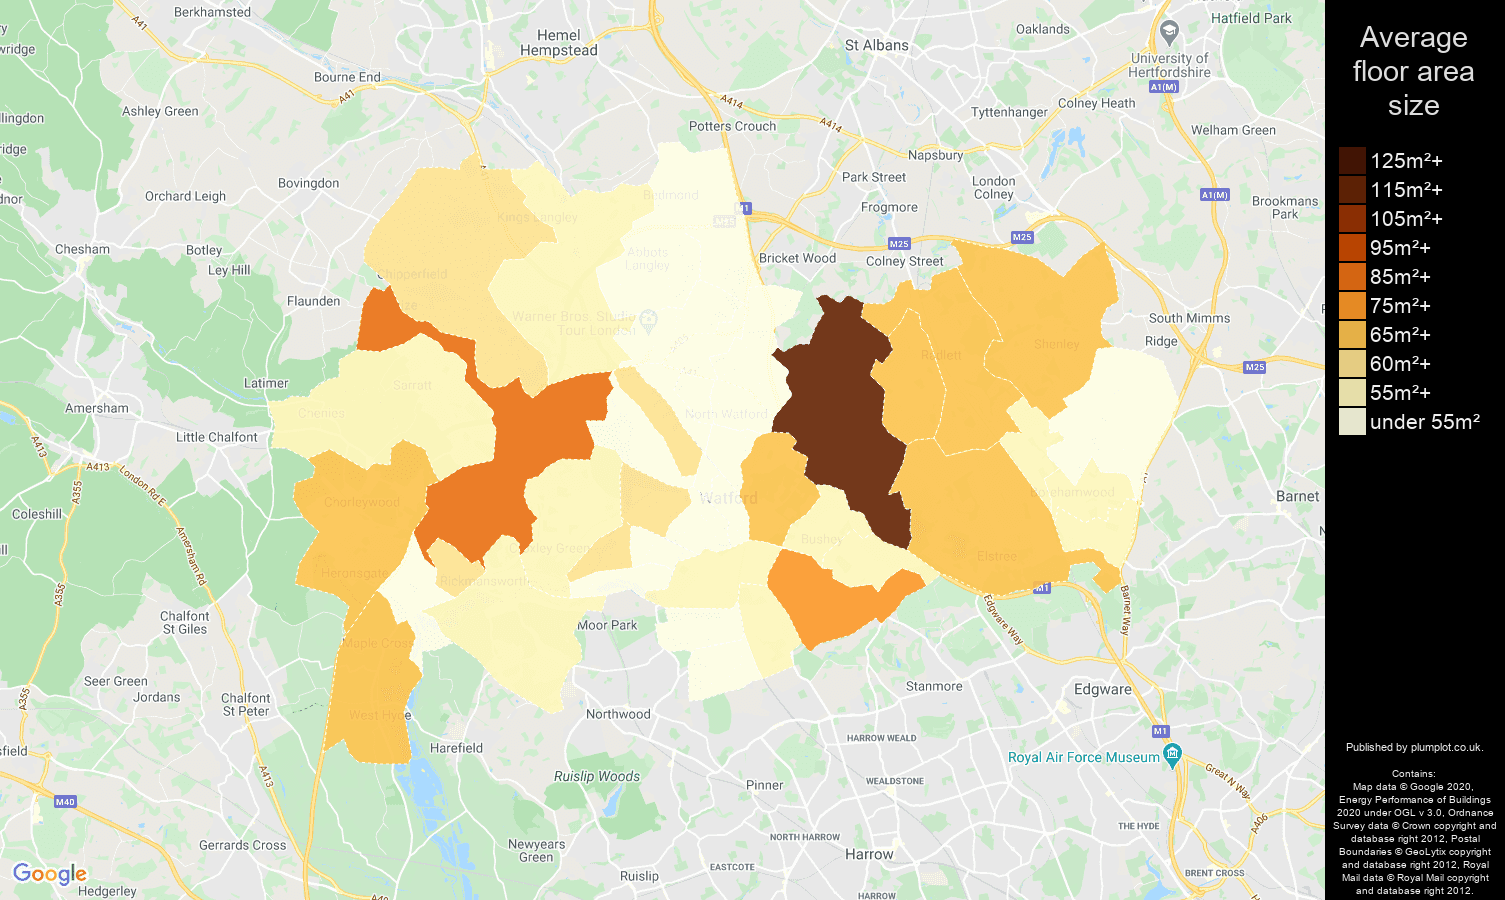 Watford map of average floor area size of flats